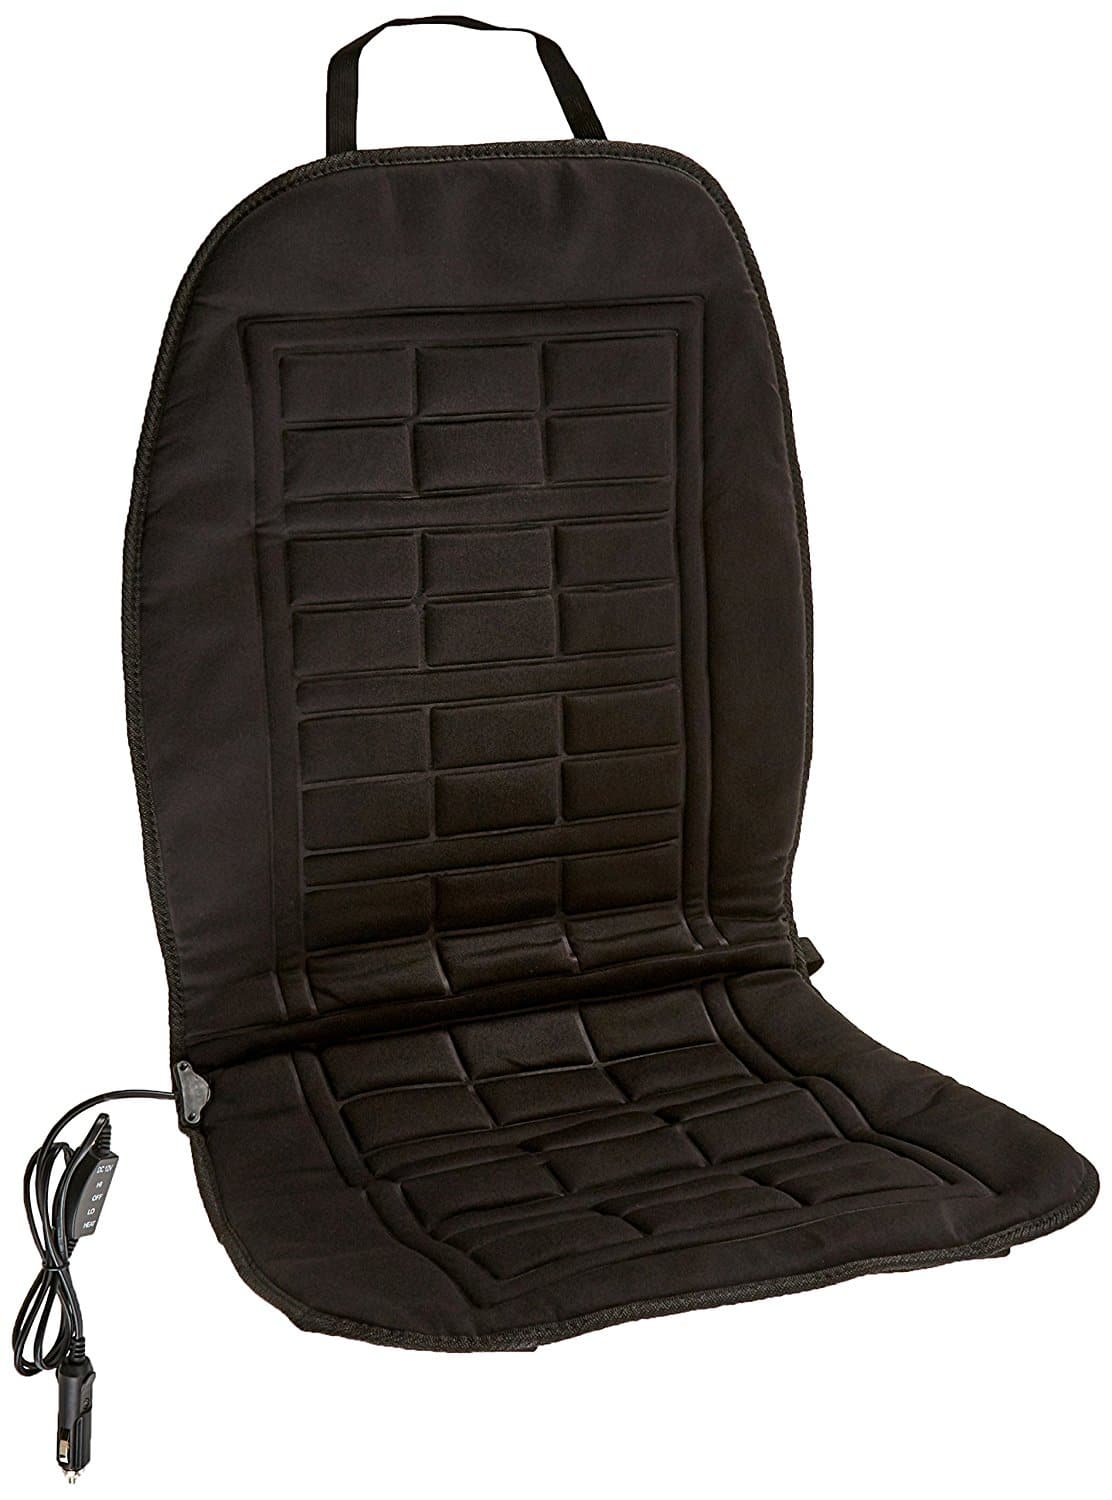 Heated Seat Covers - AUDEW Universal Heated Car Seat